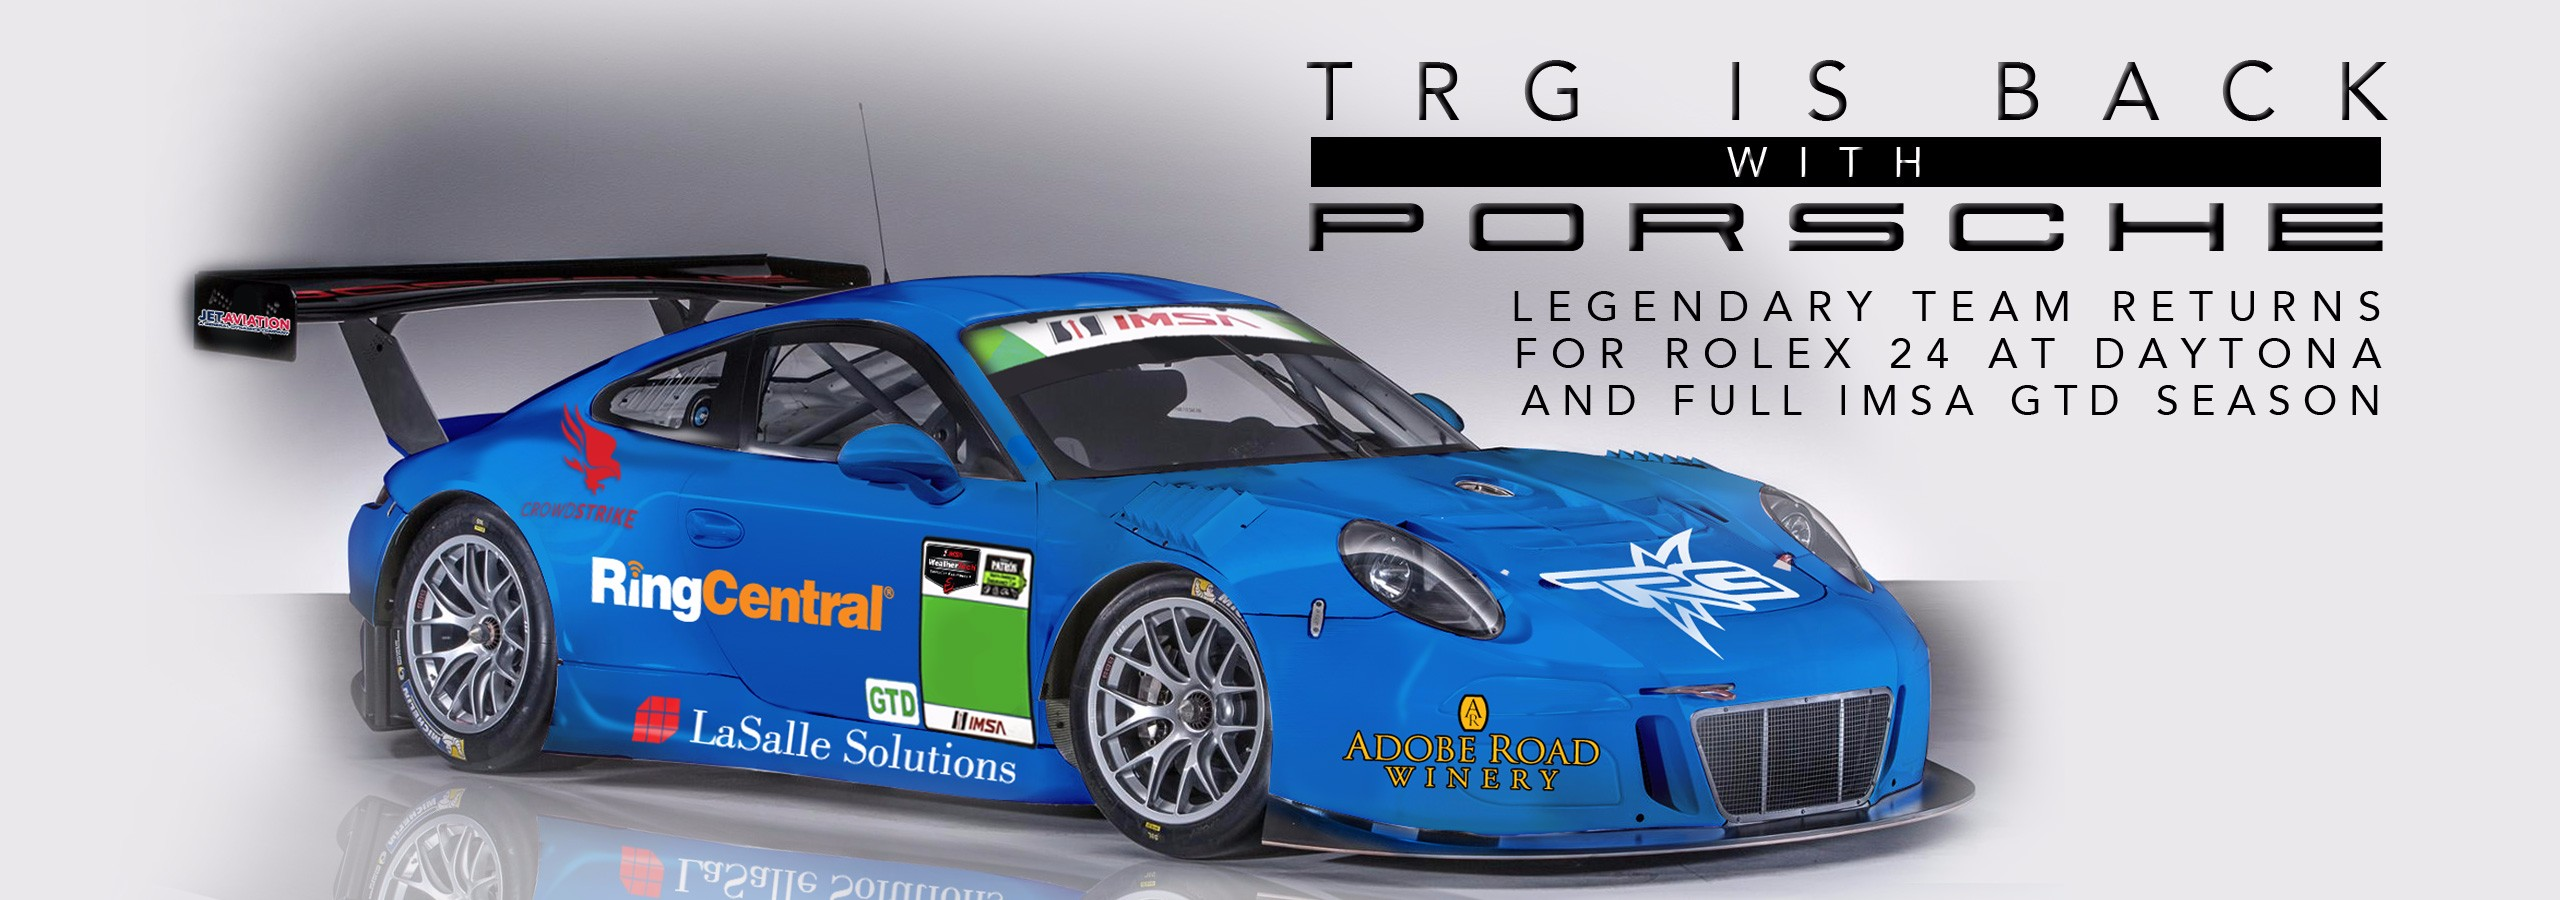 TRG is back with Porsche